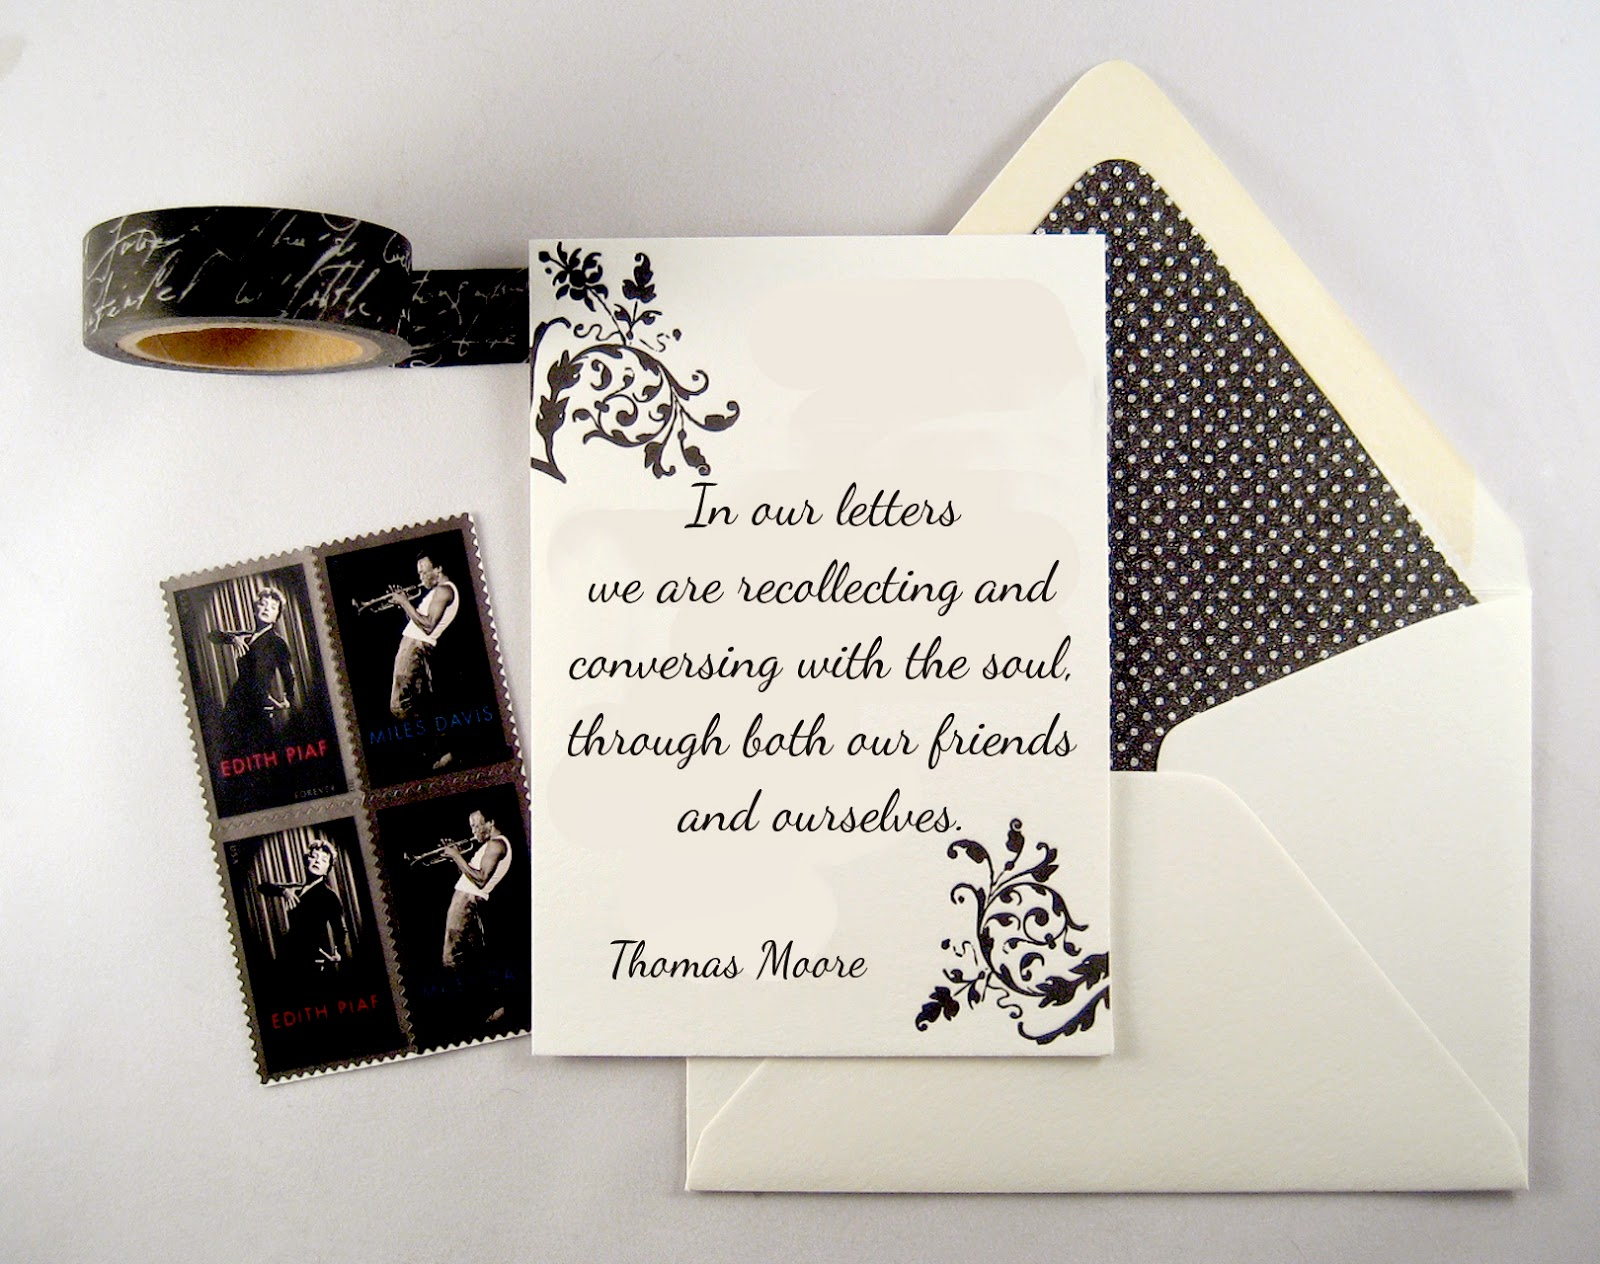 In our letters, we are recollecting and conversing with the soul, through both our friends and ourselves - Thomas Moore